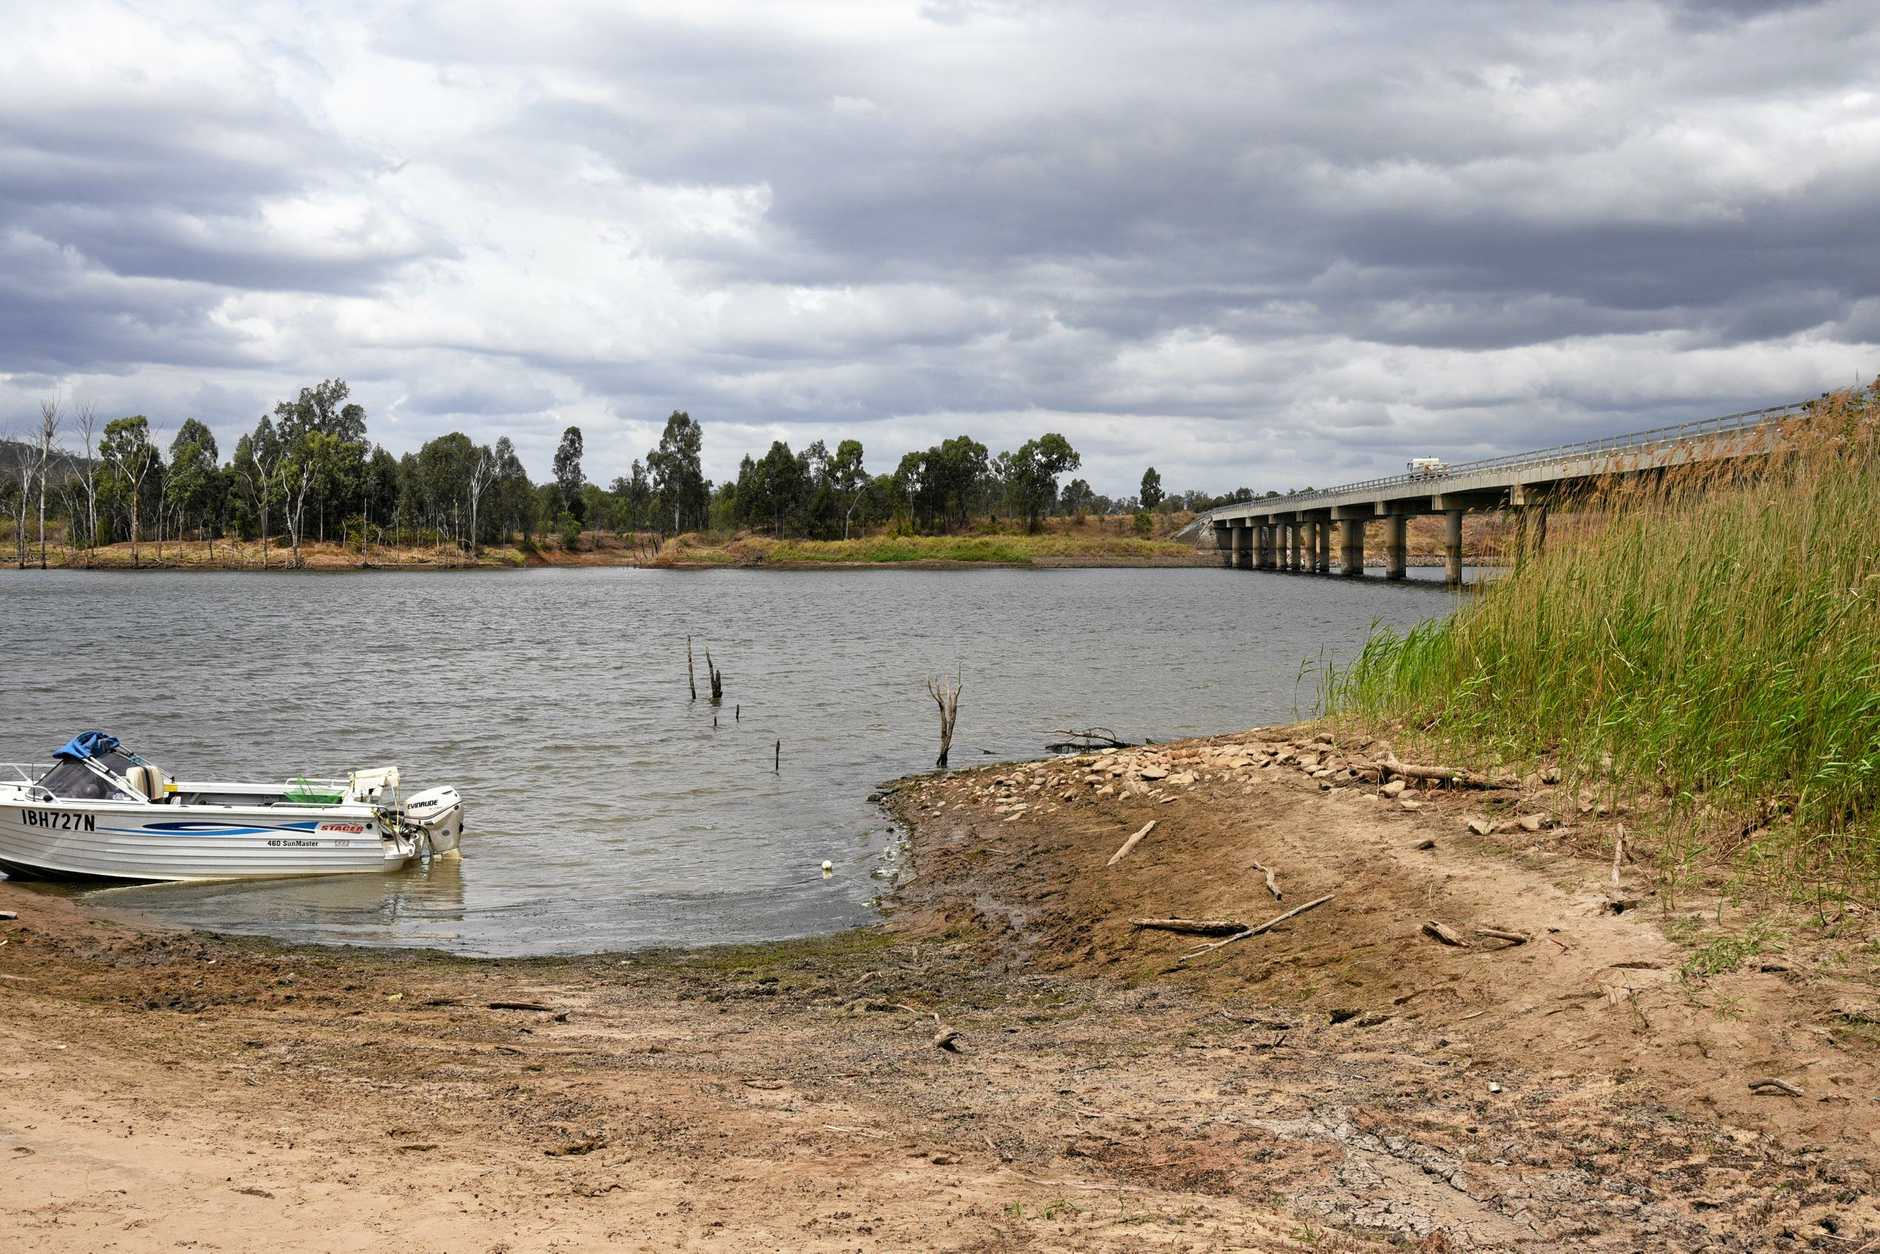 A small former bridge used before Paradise Dam was created is rumoured to lurk below the water, potentially creating a hazard if the water level drops too far.